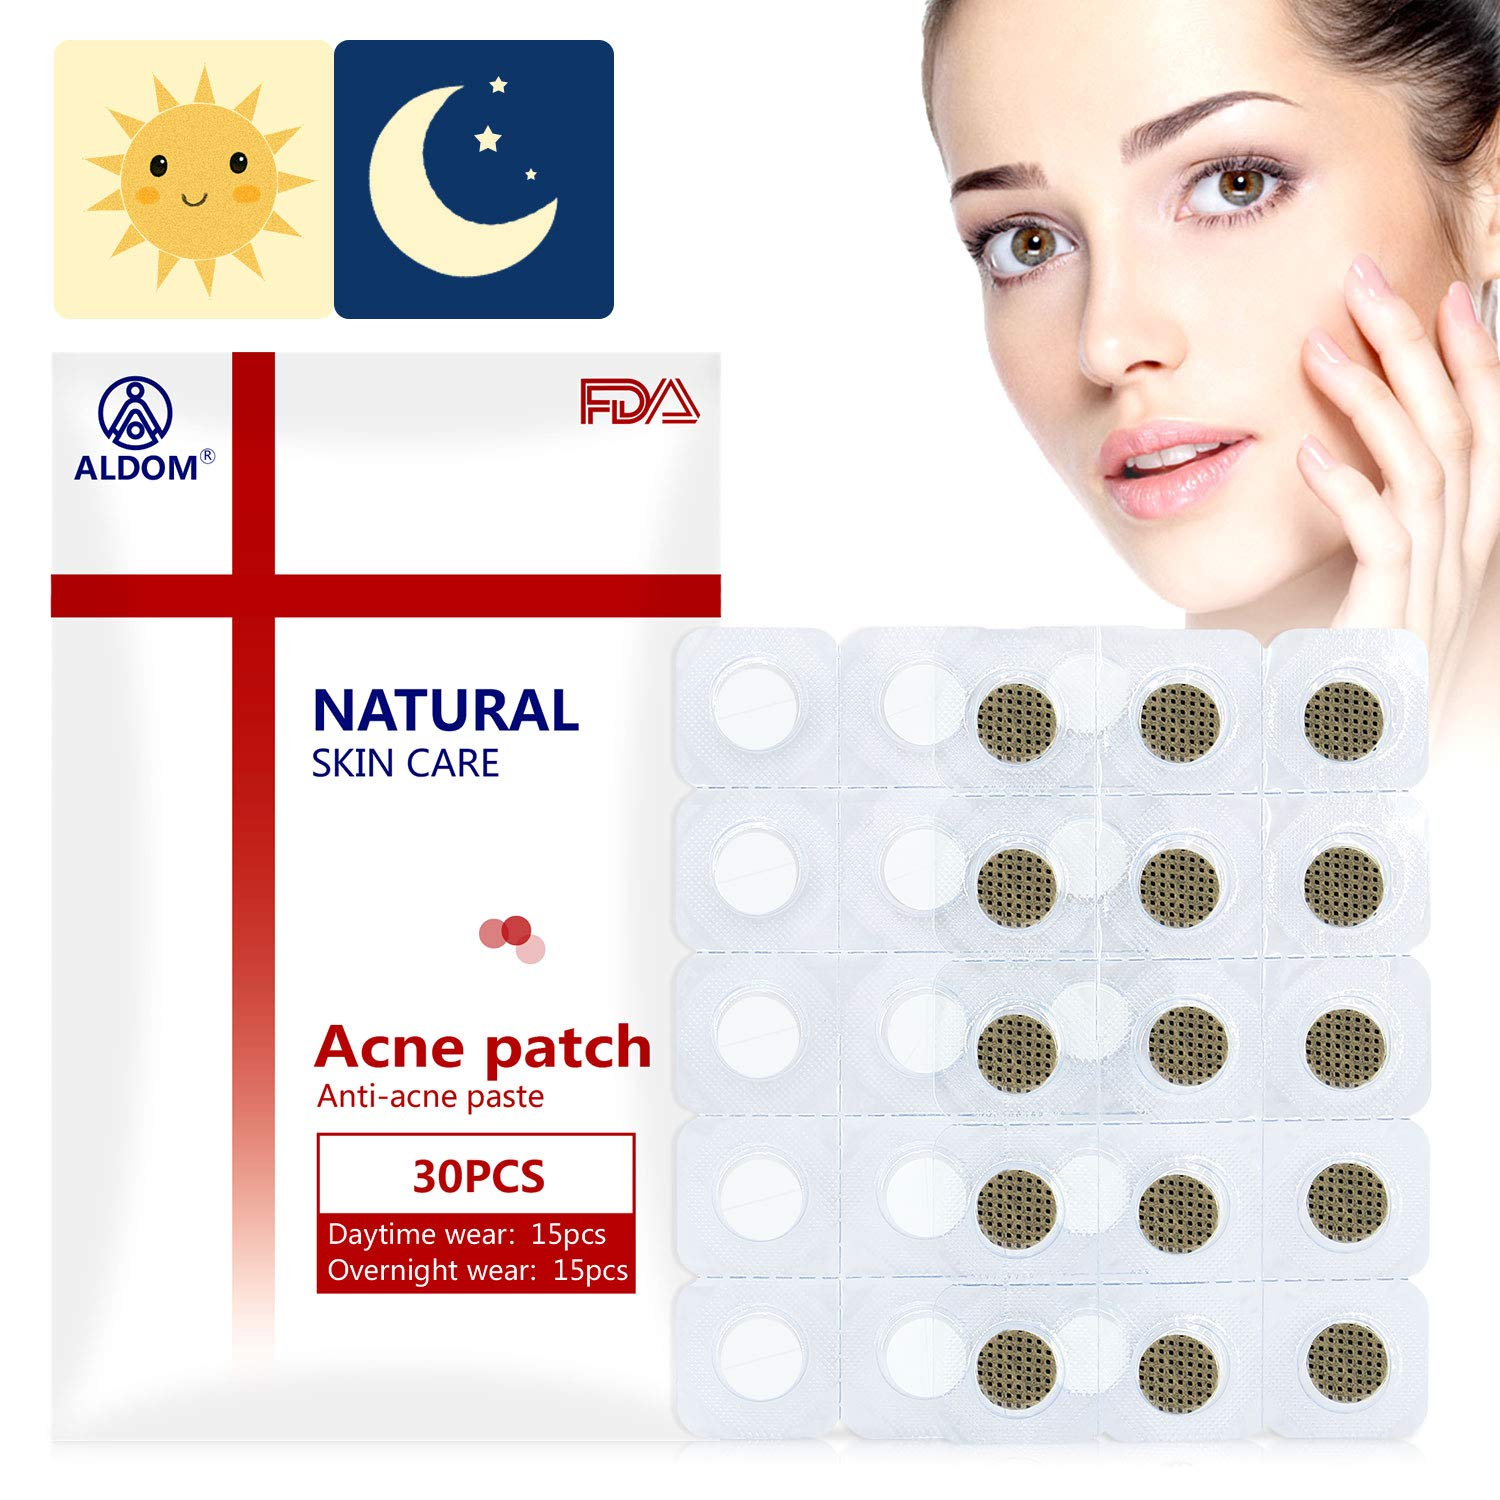 ALDOM Pimple Patch Acne Care Pimple Patches Hydrocolloid Acne Spot Treatment Absorbing Cover Pads Day Night Invisible Cover Patch Skin Treatment Acne Dots Pimple Stickers for Face Spot Patch by ALDOM